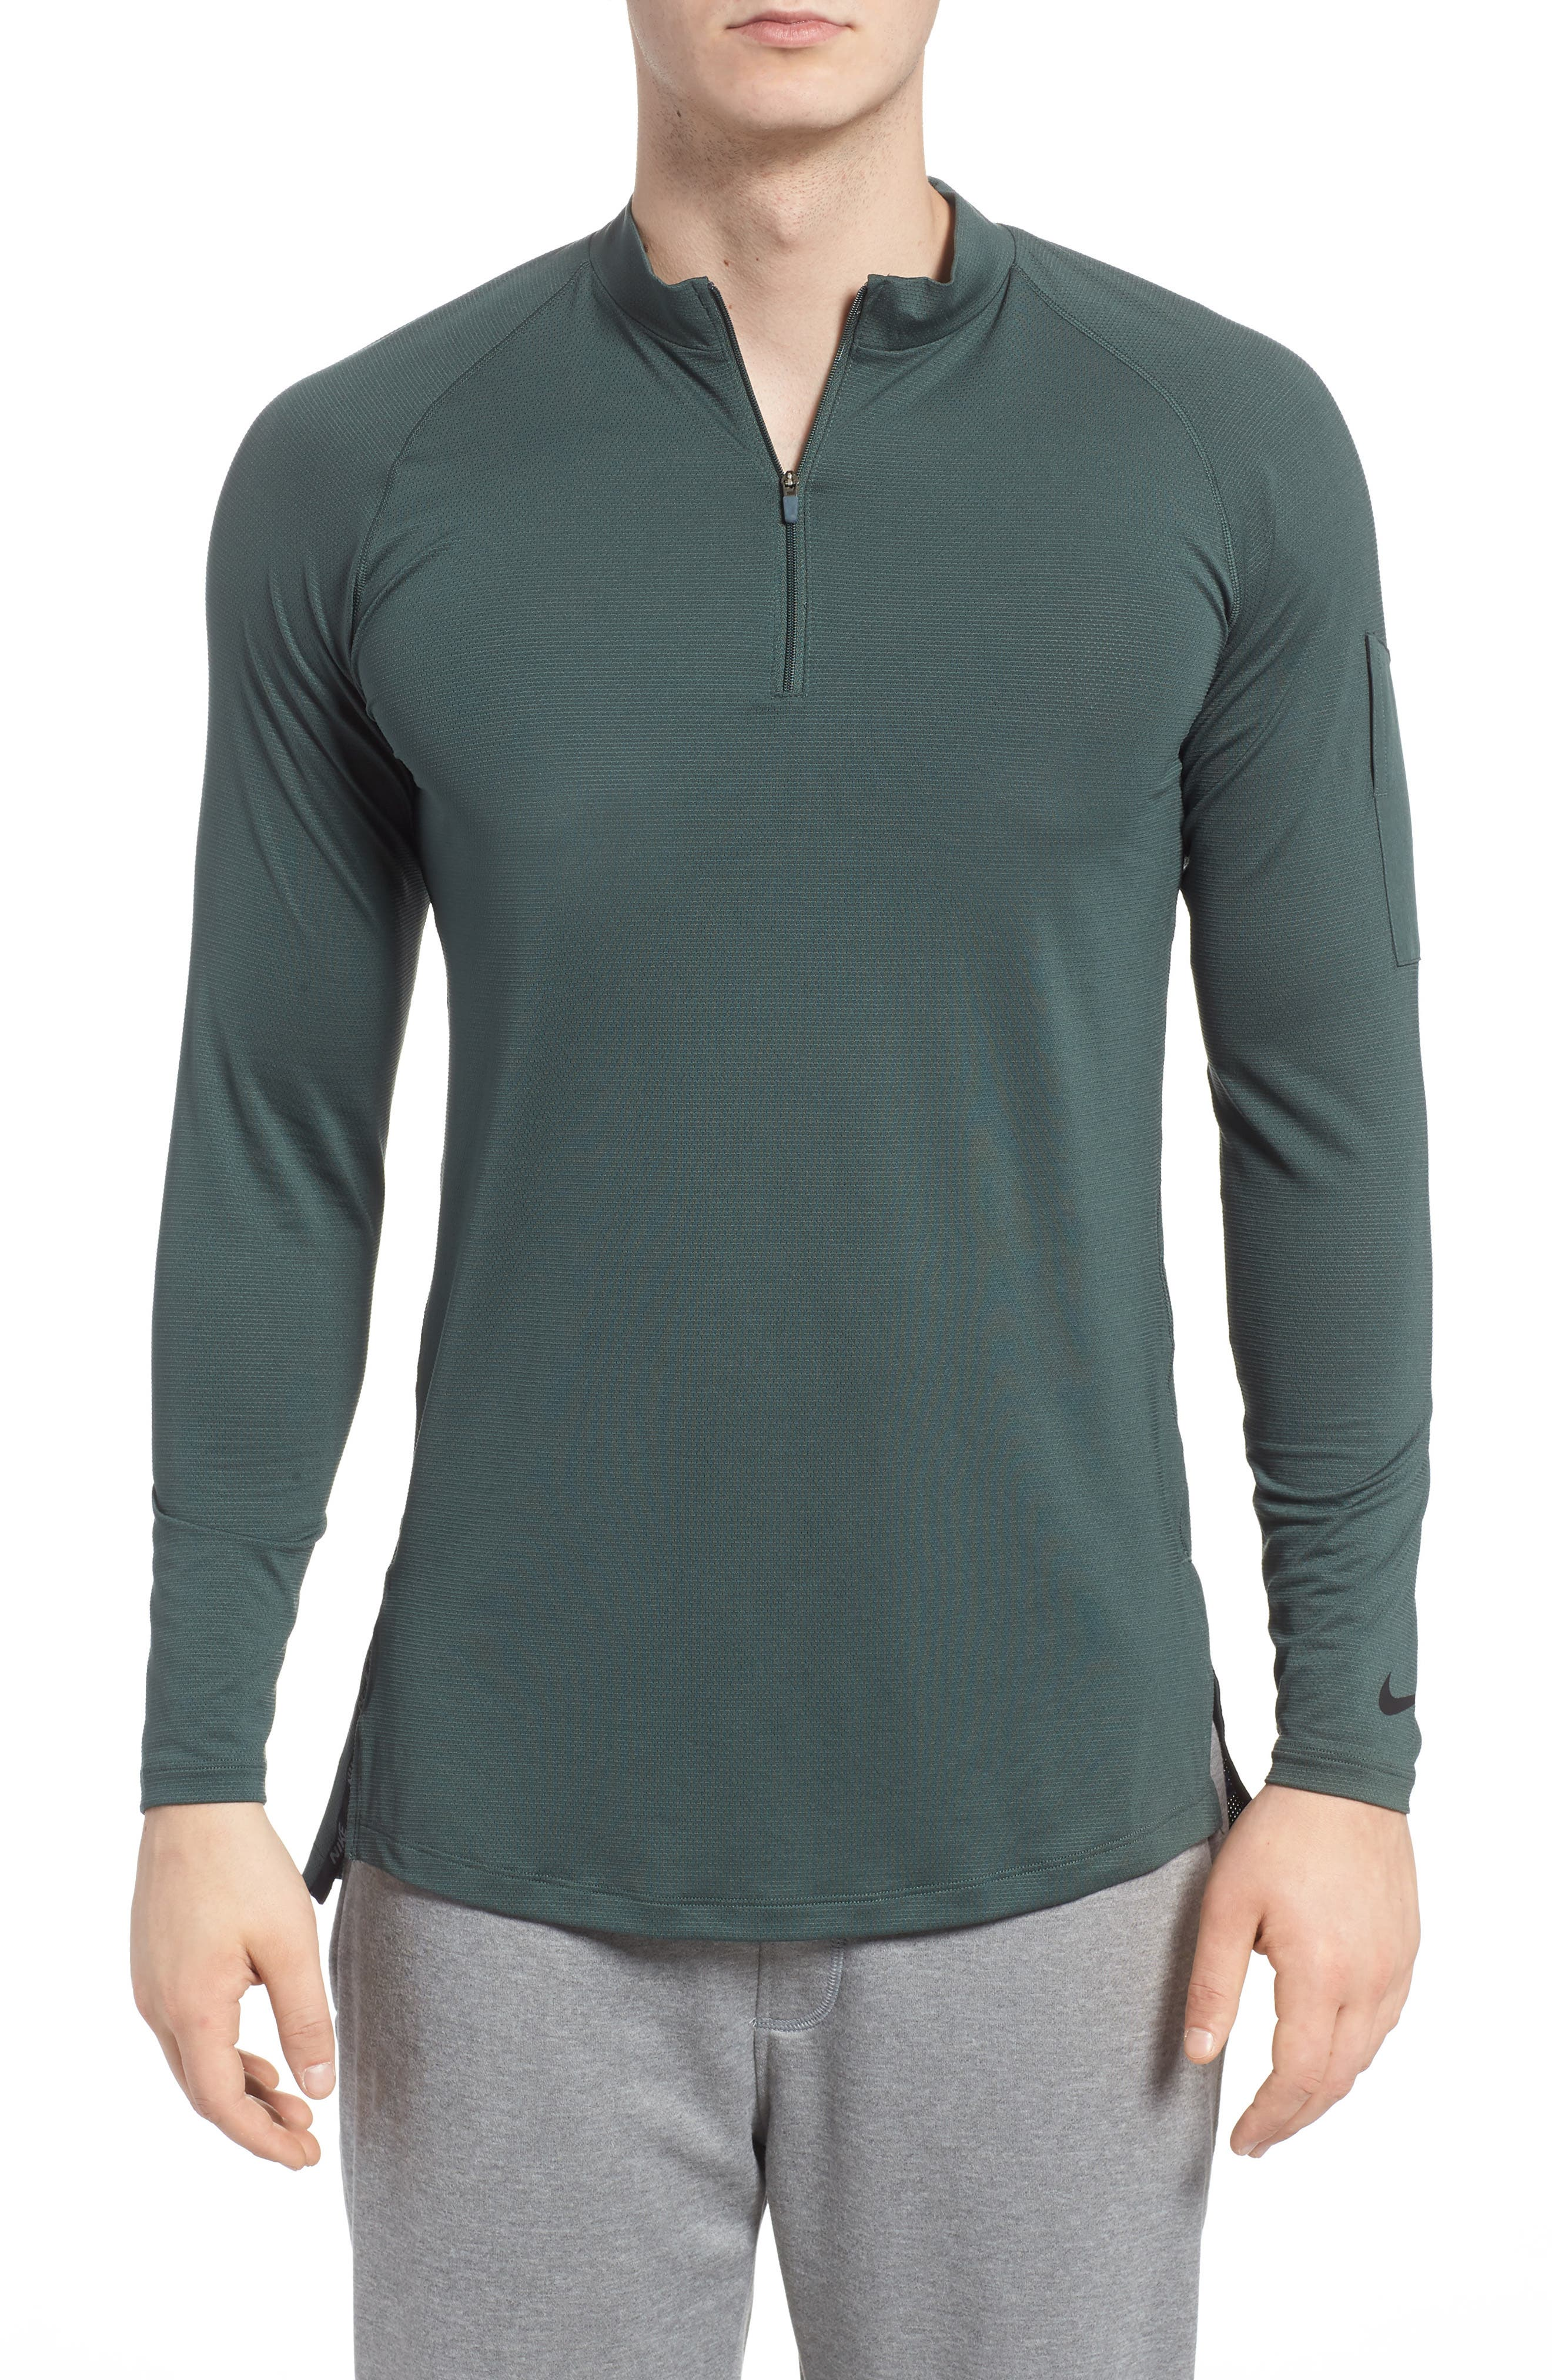 NIKE,                             Pro Fitted Utility Dry Tech Sport Top,                             Main thumbnail 1, color,                             VINTAGE GREEN/ BLACK